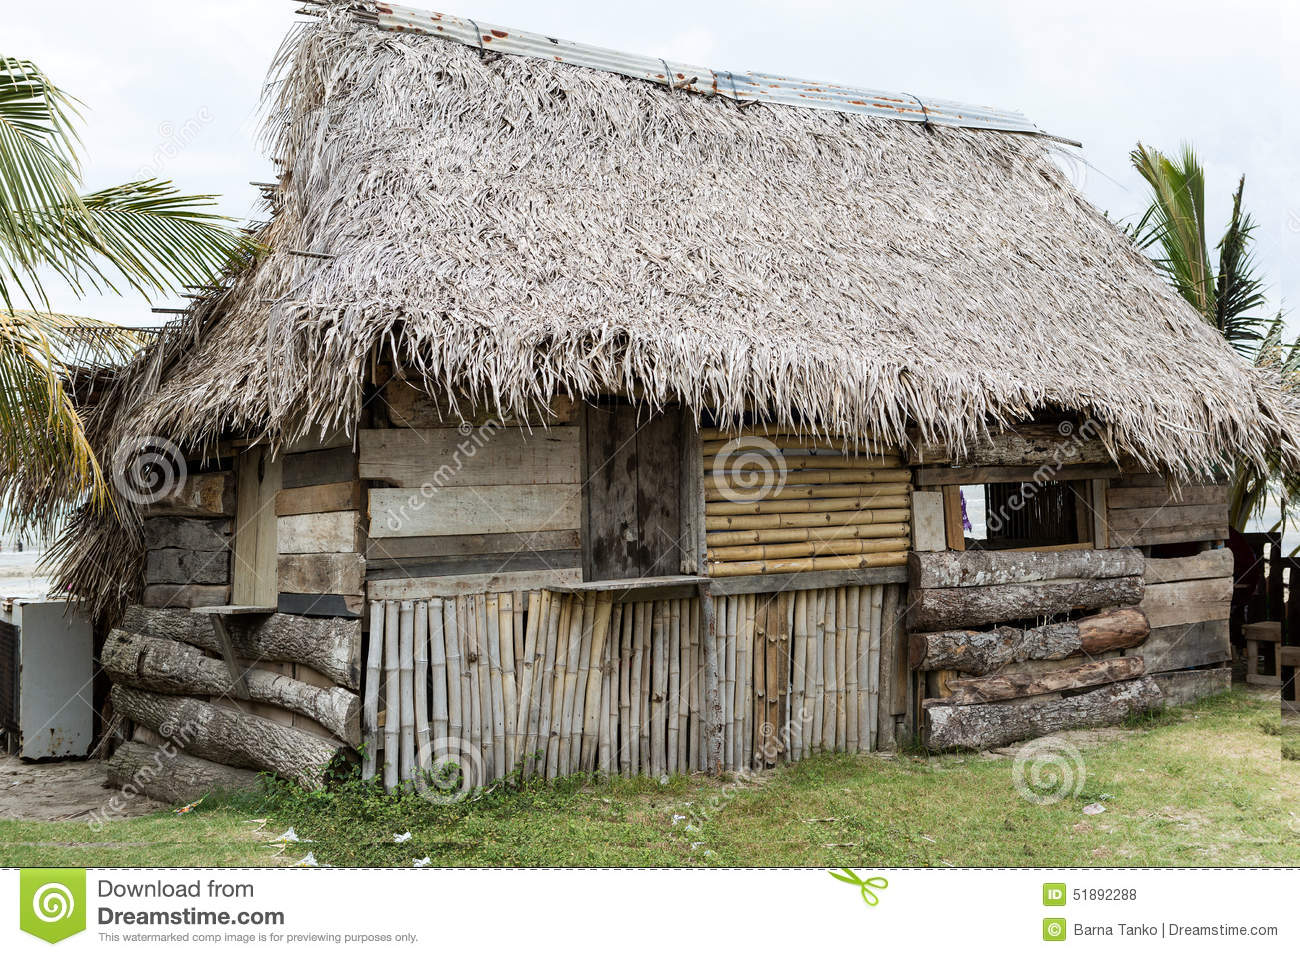 Garifuna house in honduras made of natural materials stock photo image 51892288 - Houses made from natural materials ...